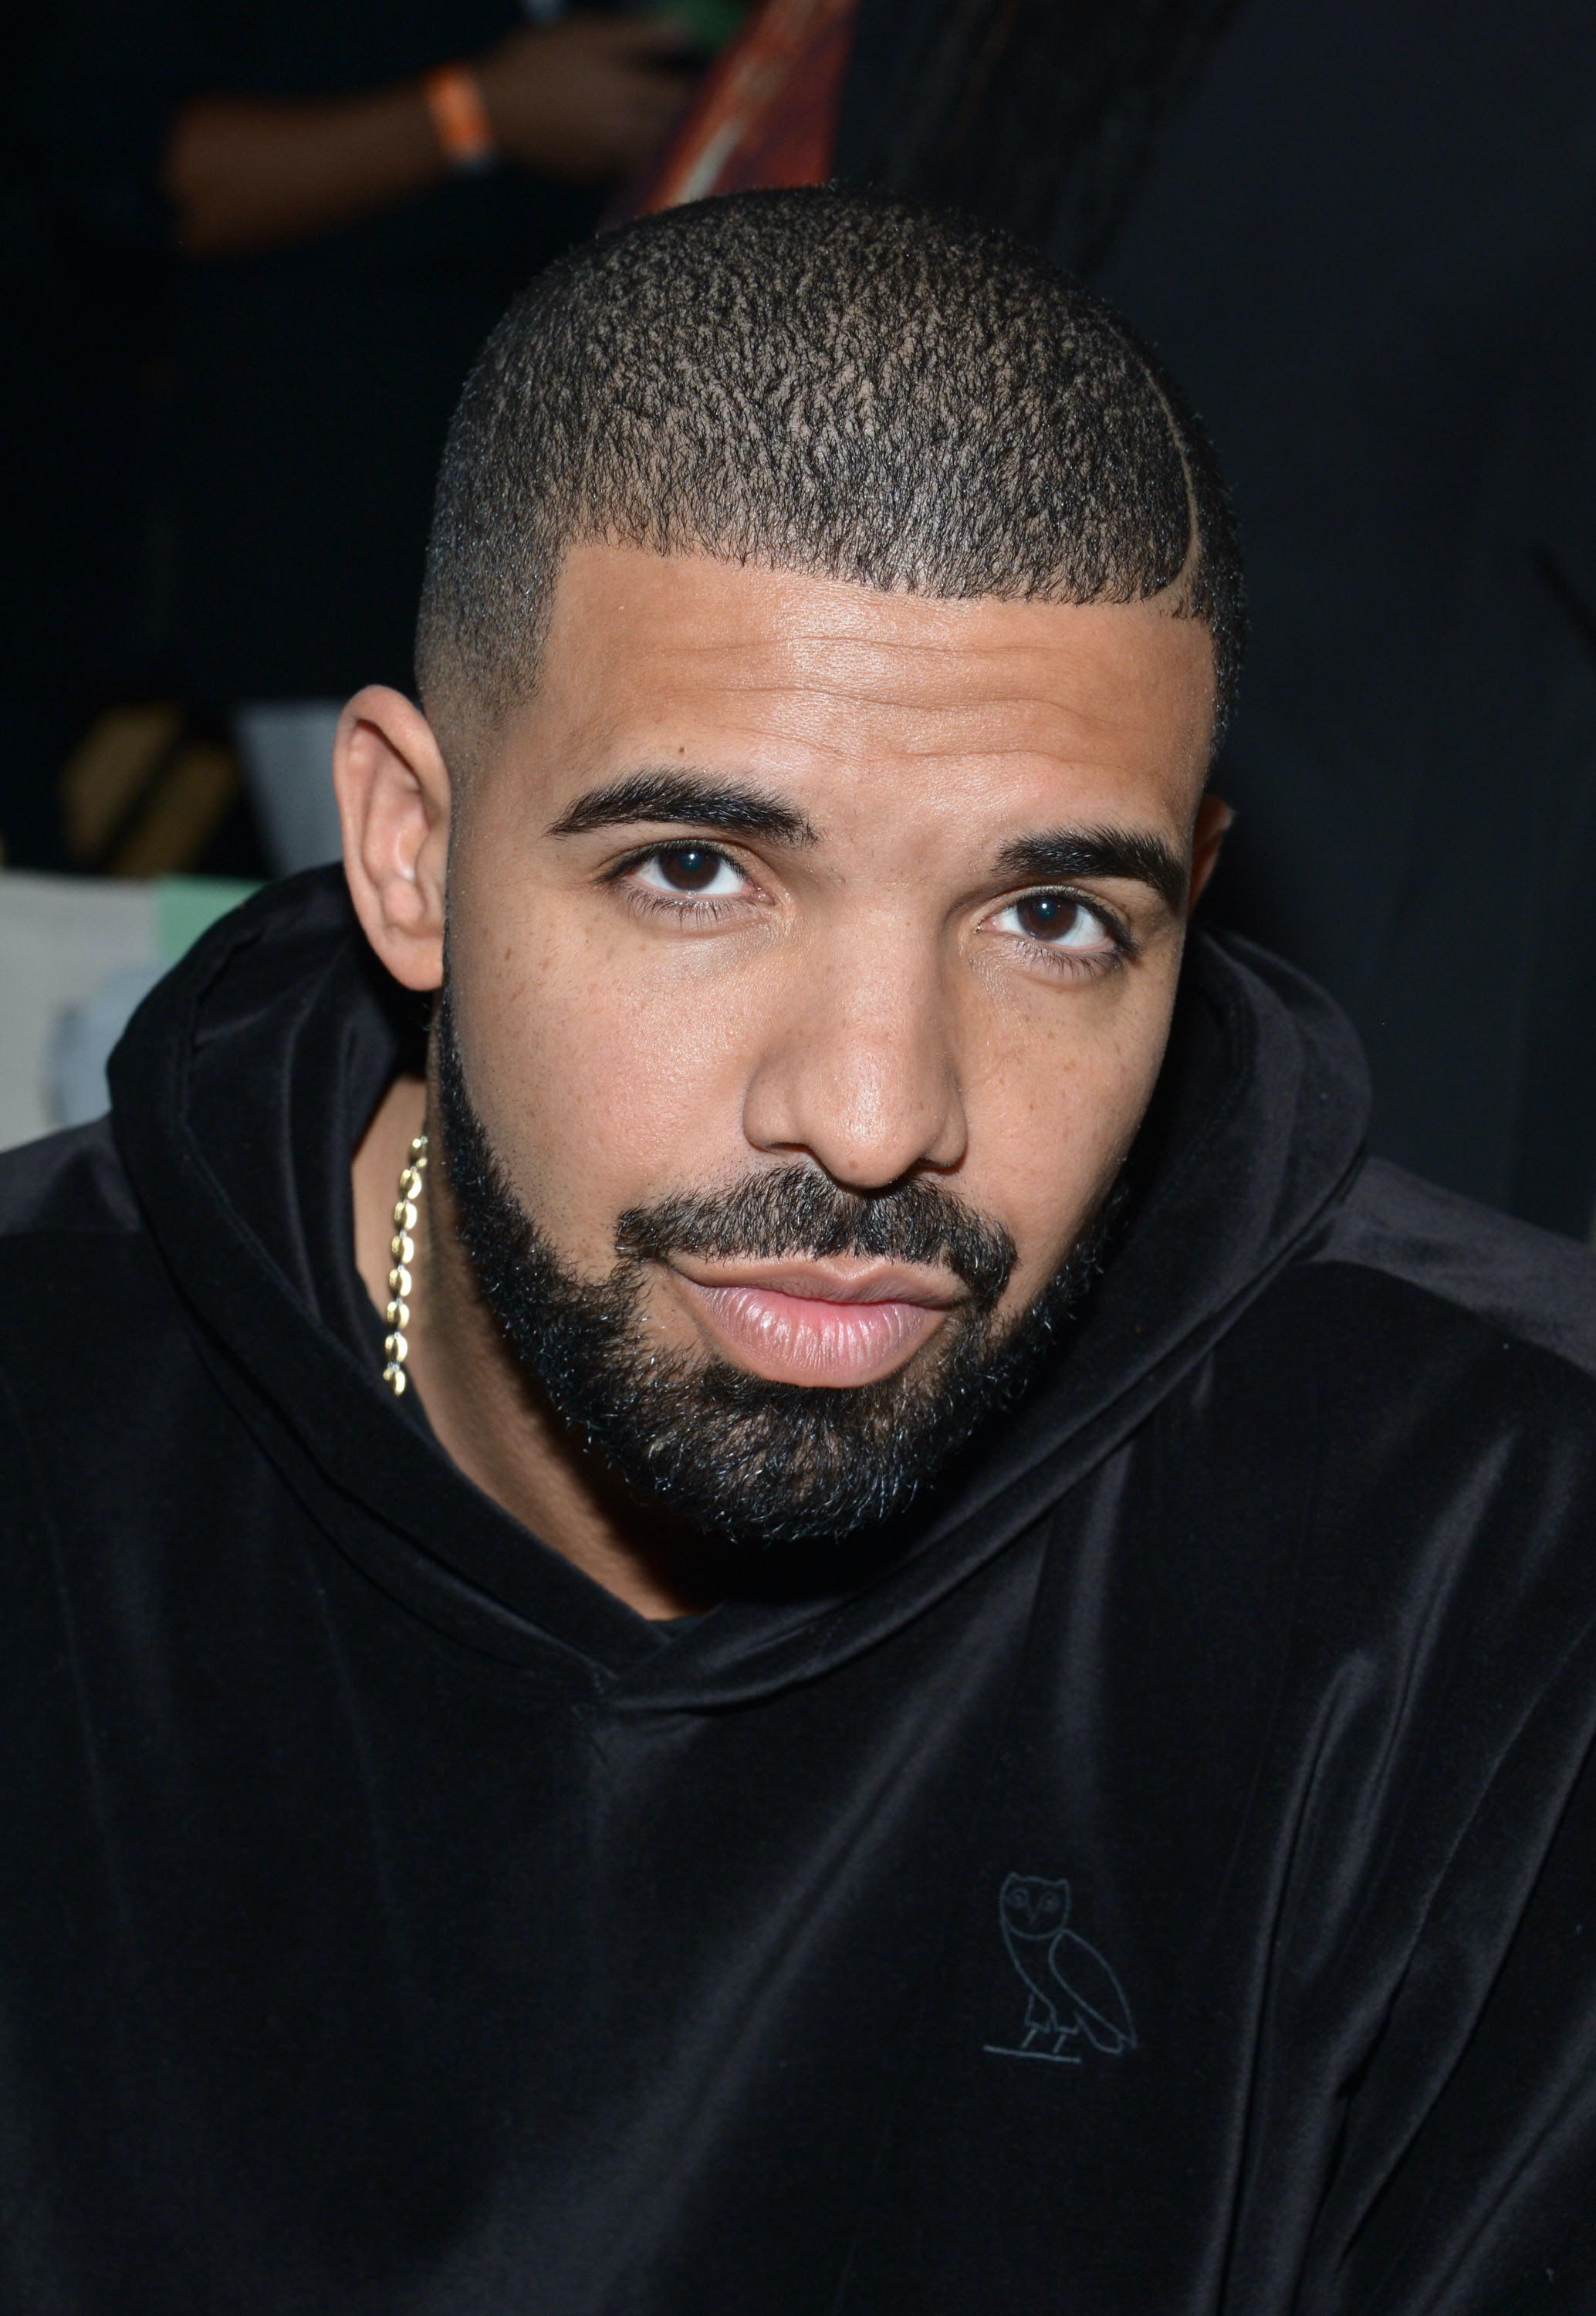 15 of Drake's catchiest and most relatable lyrics about life